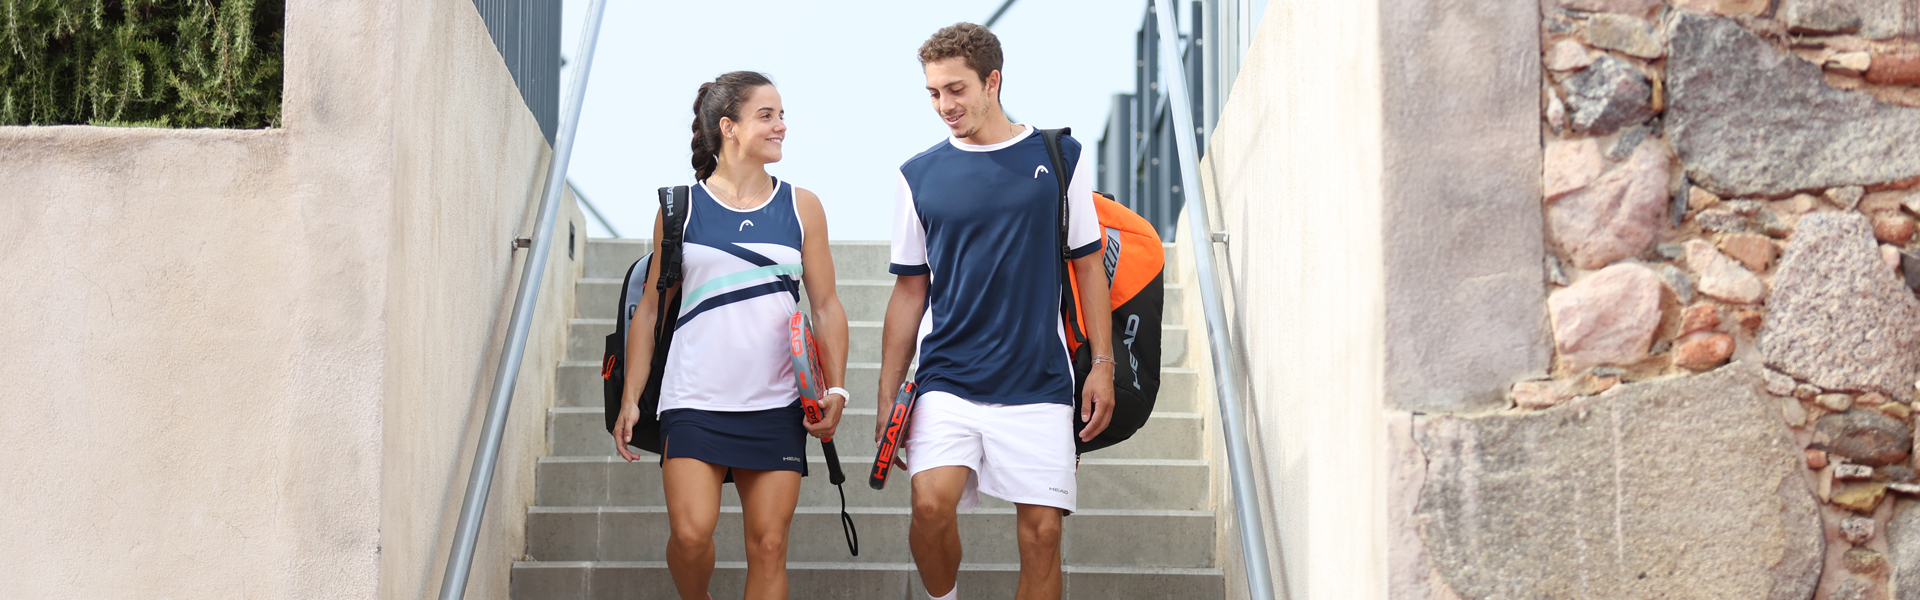 GAME, SET AND MATCH FOR THE 2021 PADEL SPORTSWEAR  COLLECTION